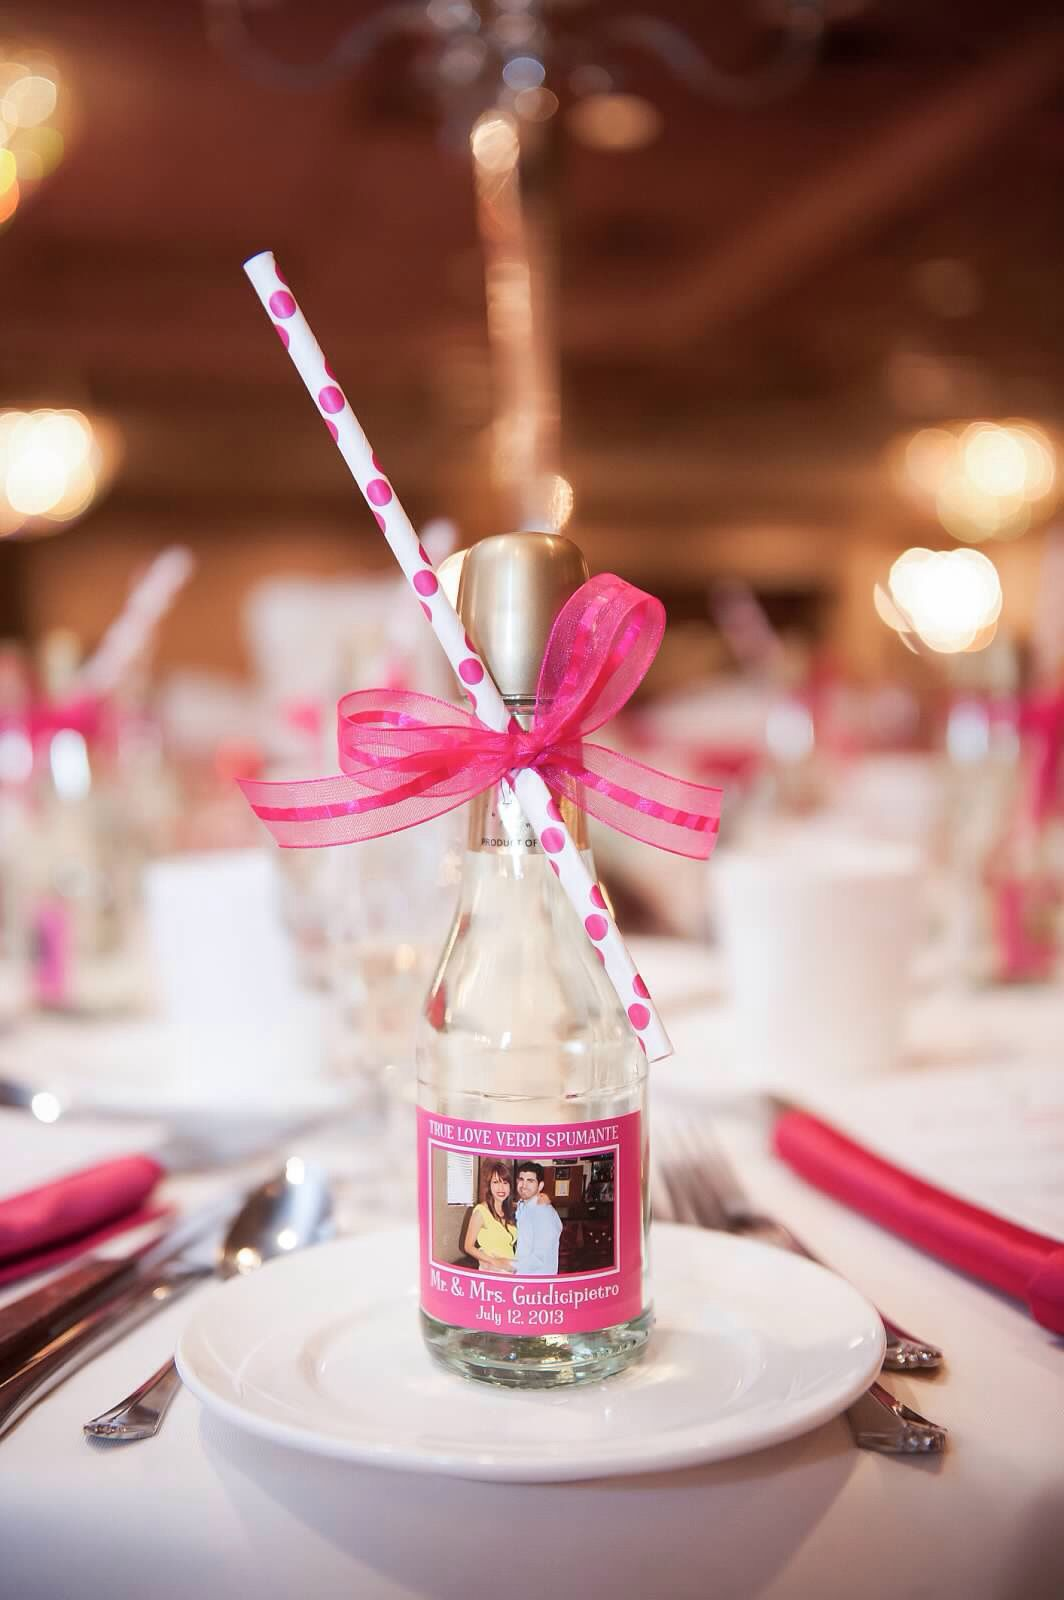 My wedding favors | Favors | Pinterest | Favors, Wedding and Weddings